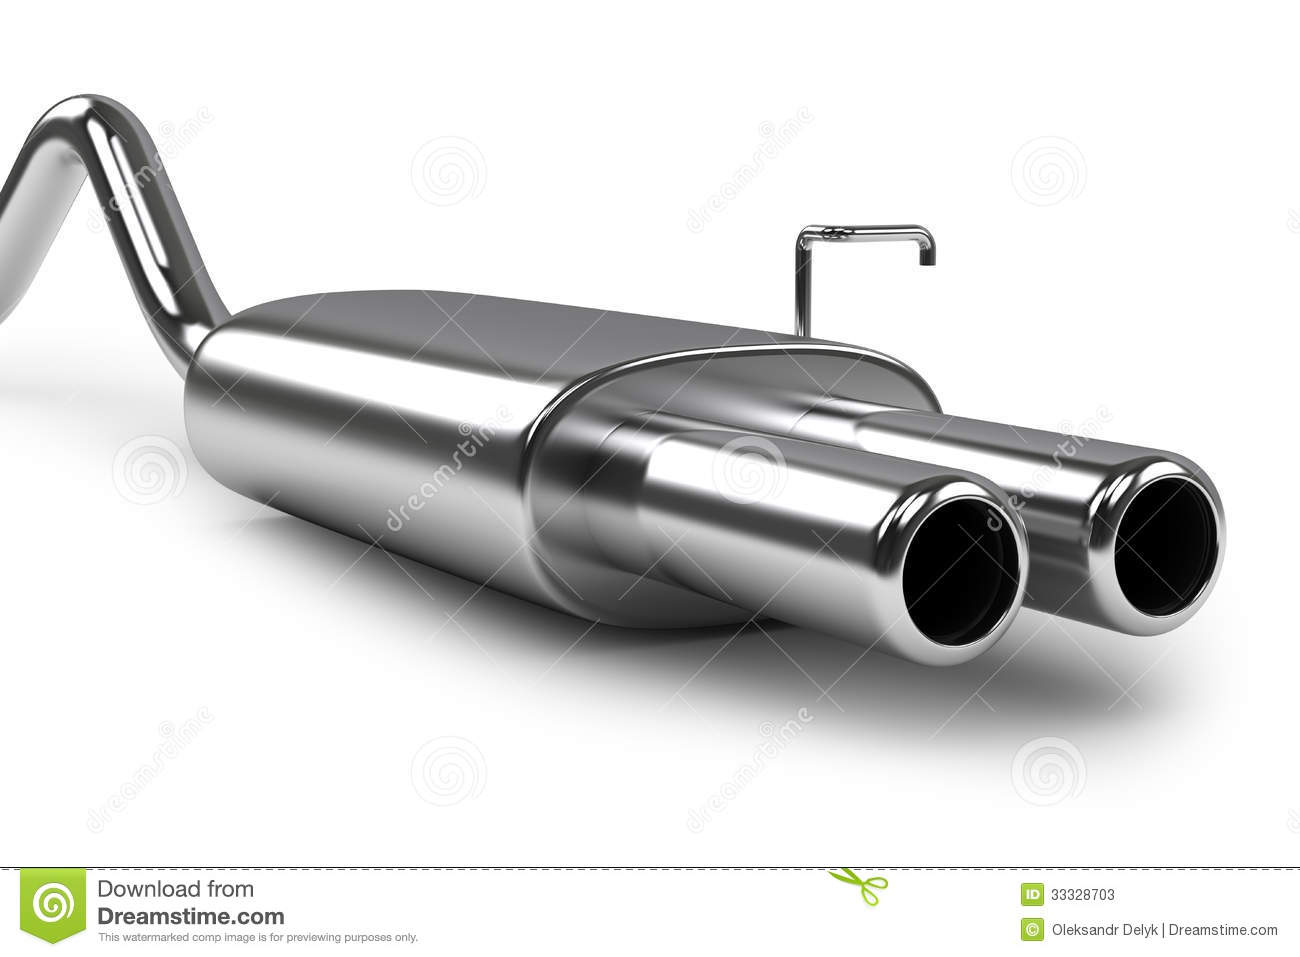 Car X Muffler Prices